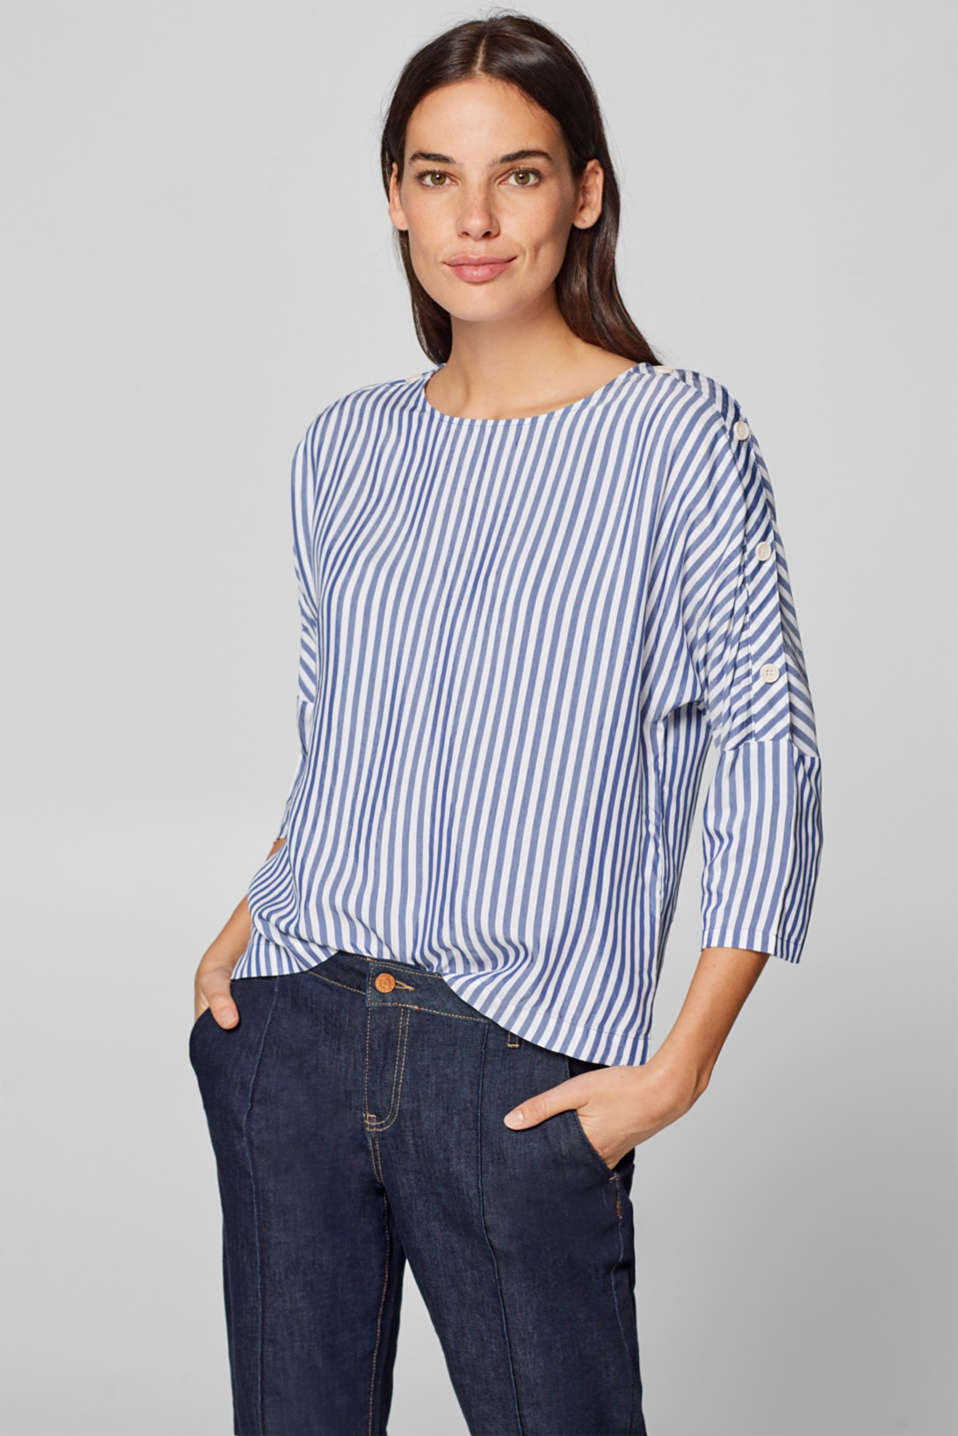 Esprit - Striped blouse with buttons on the sleeves